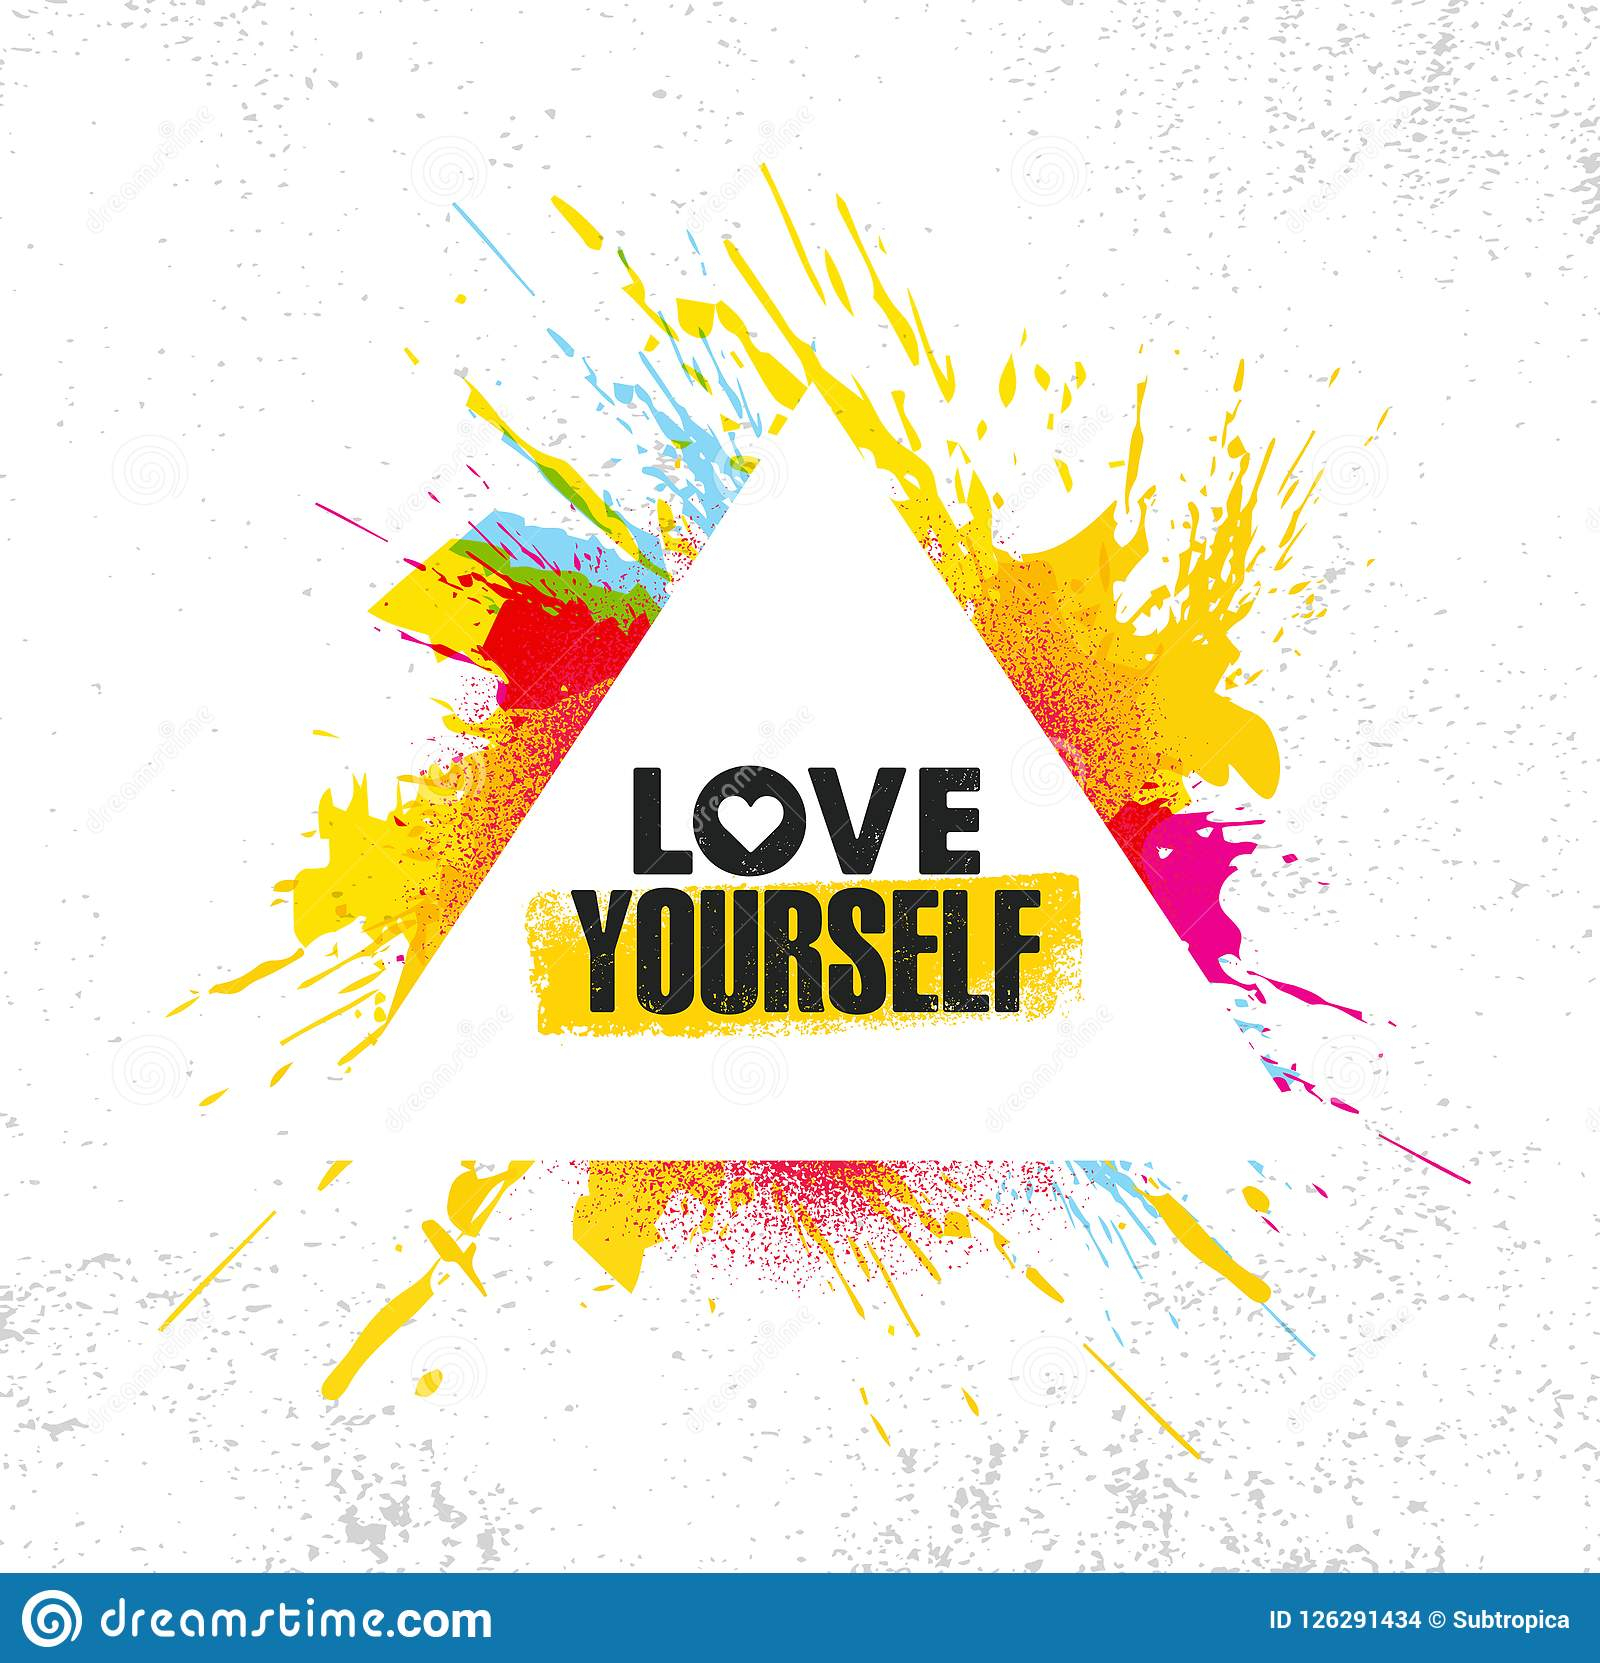 Love Yourself (View 24 of 30)